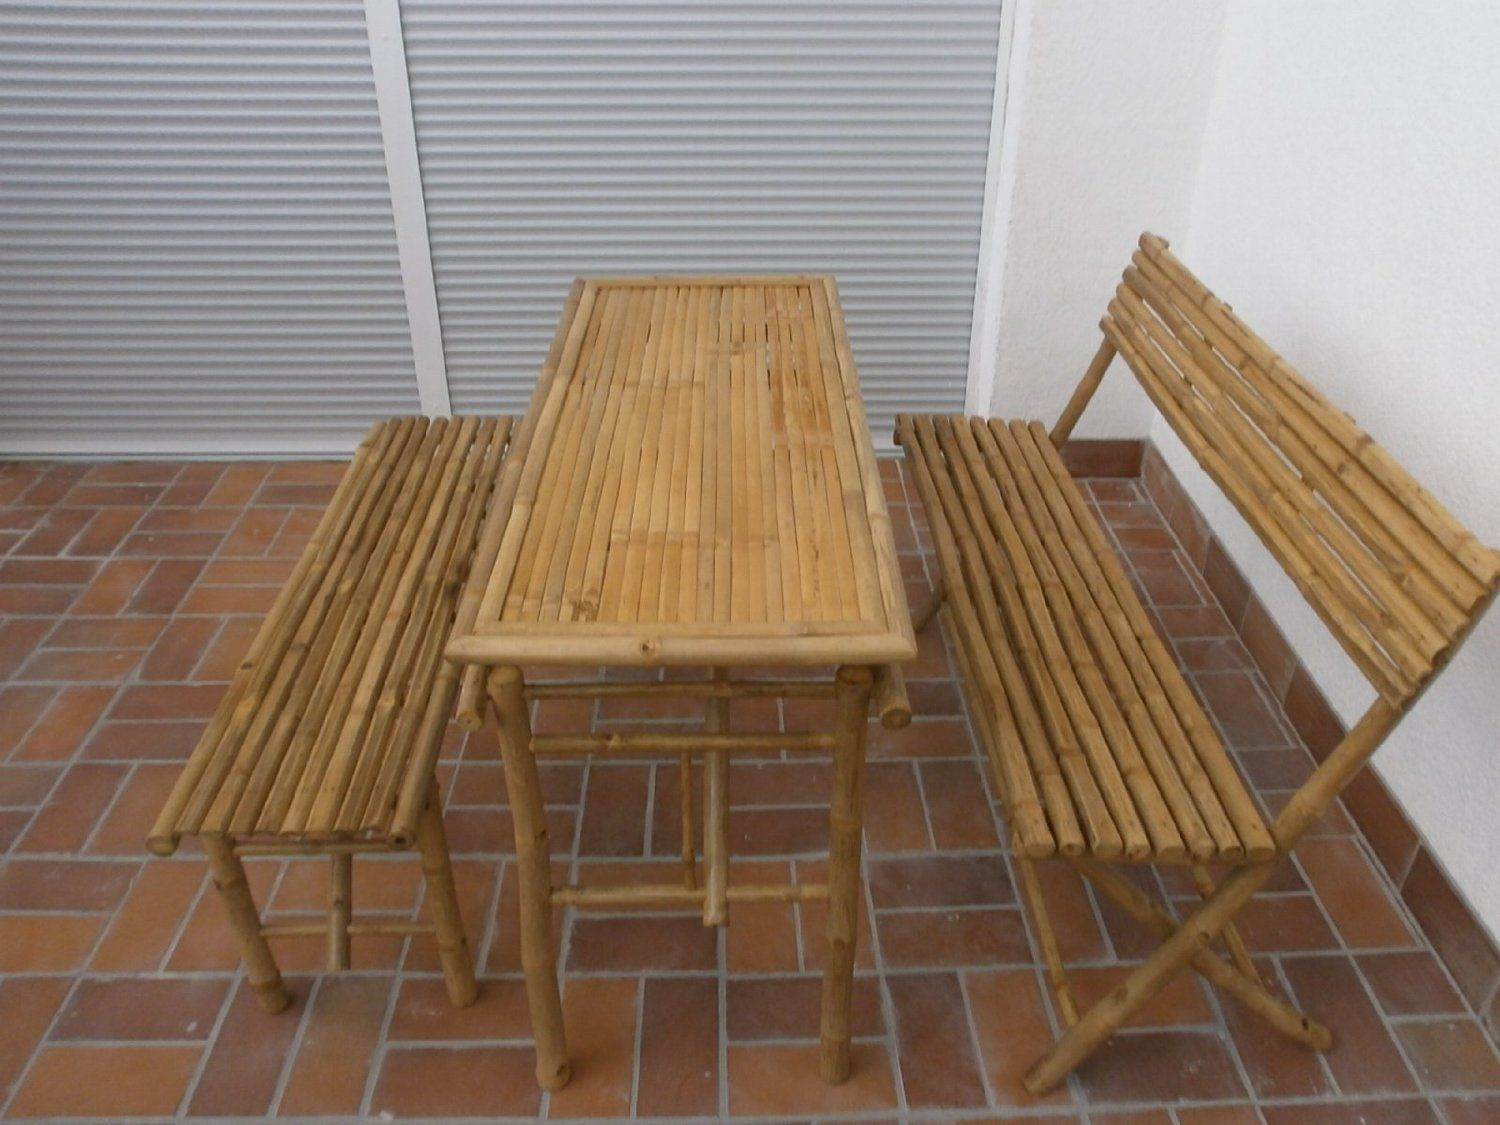 Kienlam Bamboo Garden Furniture Set with 1 Table and 2 Benches ...